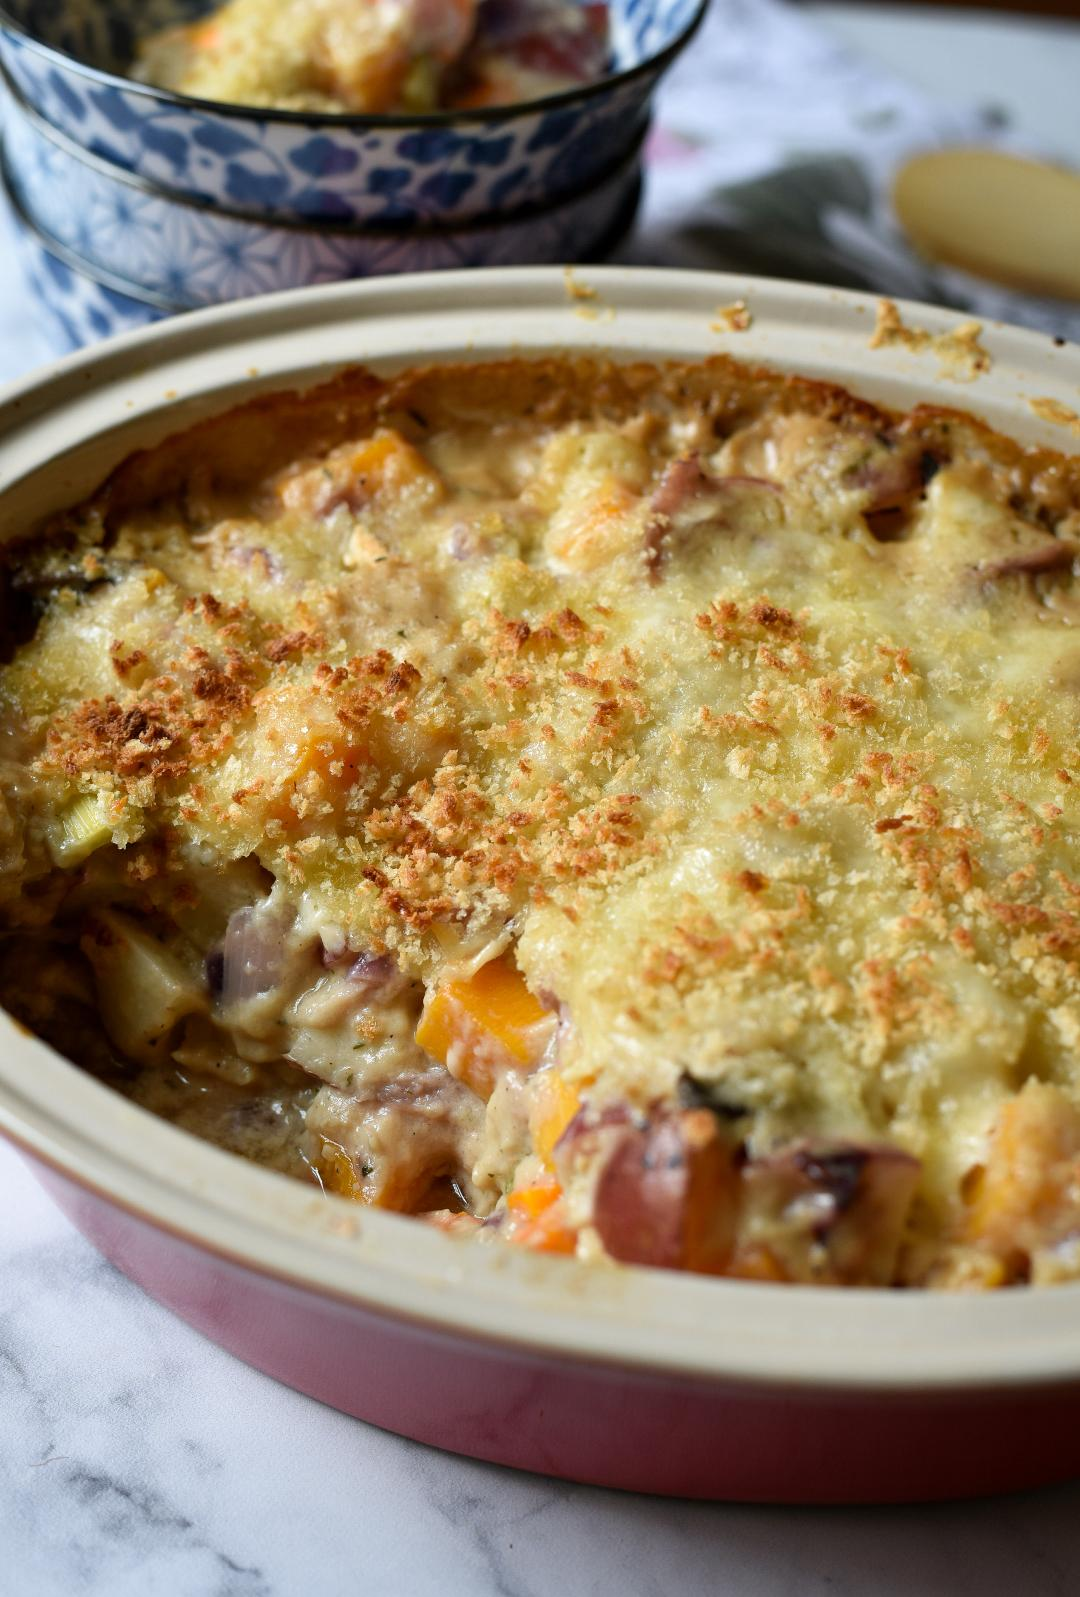 A casserole of vegetables topped with crispy cheese and panko